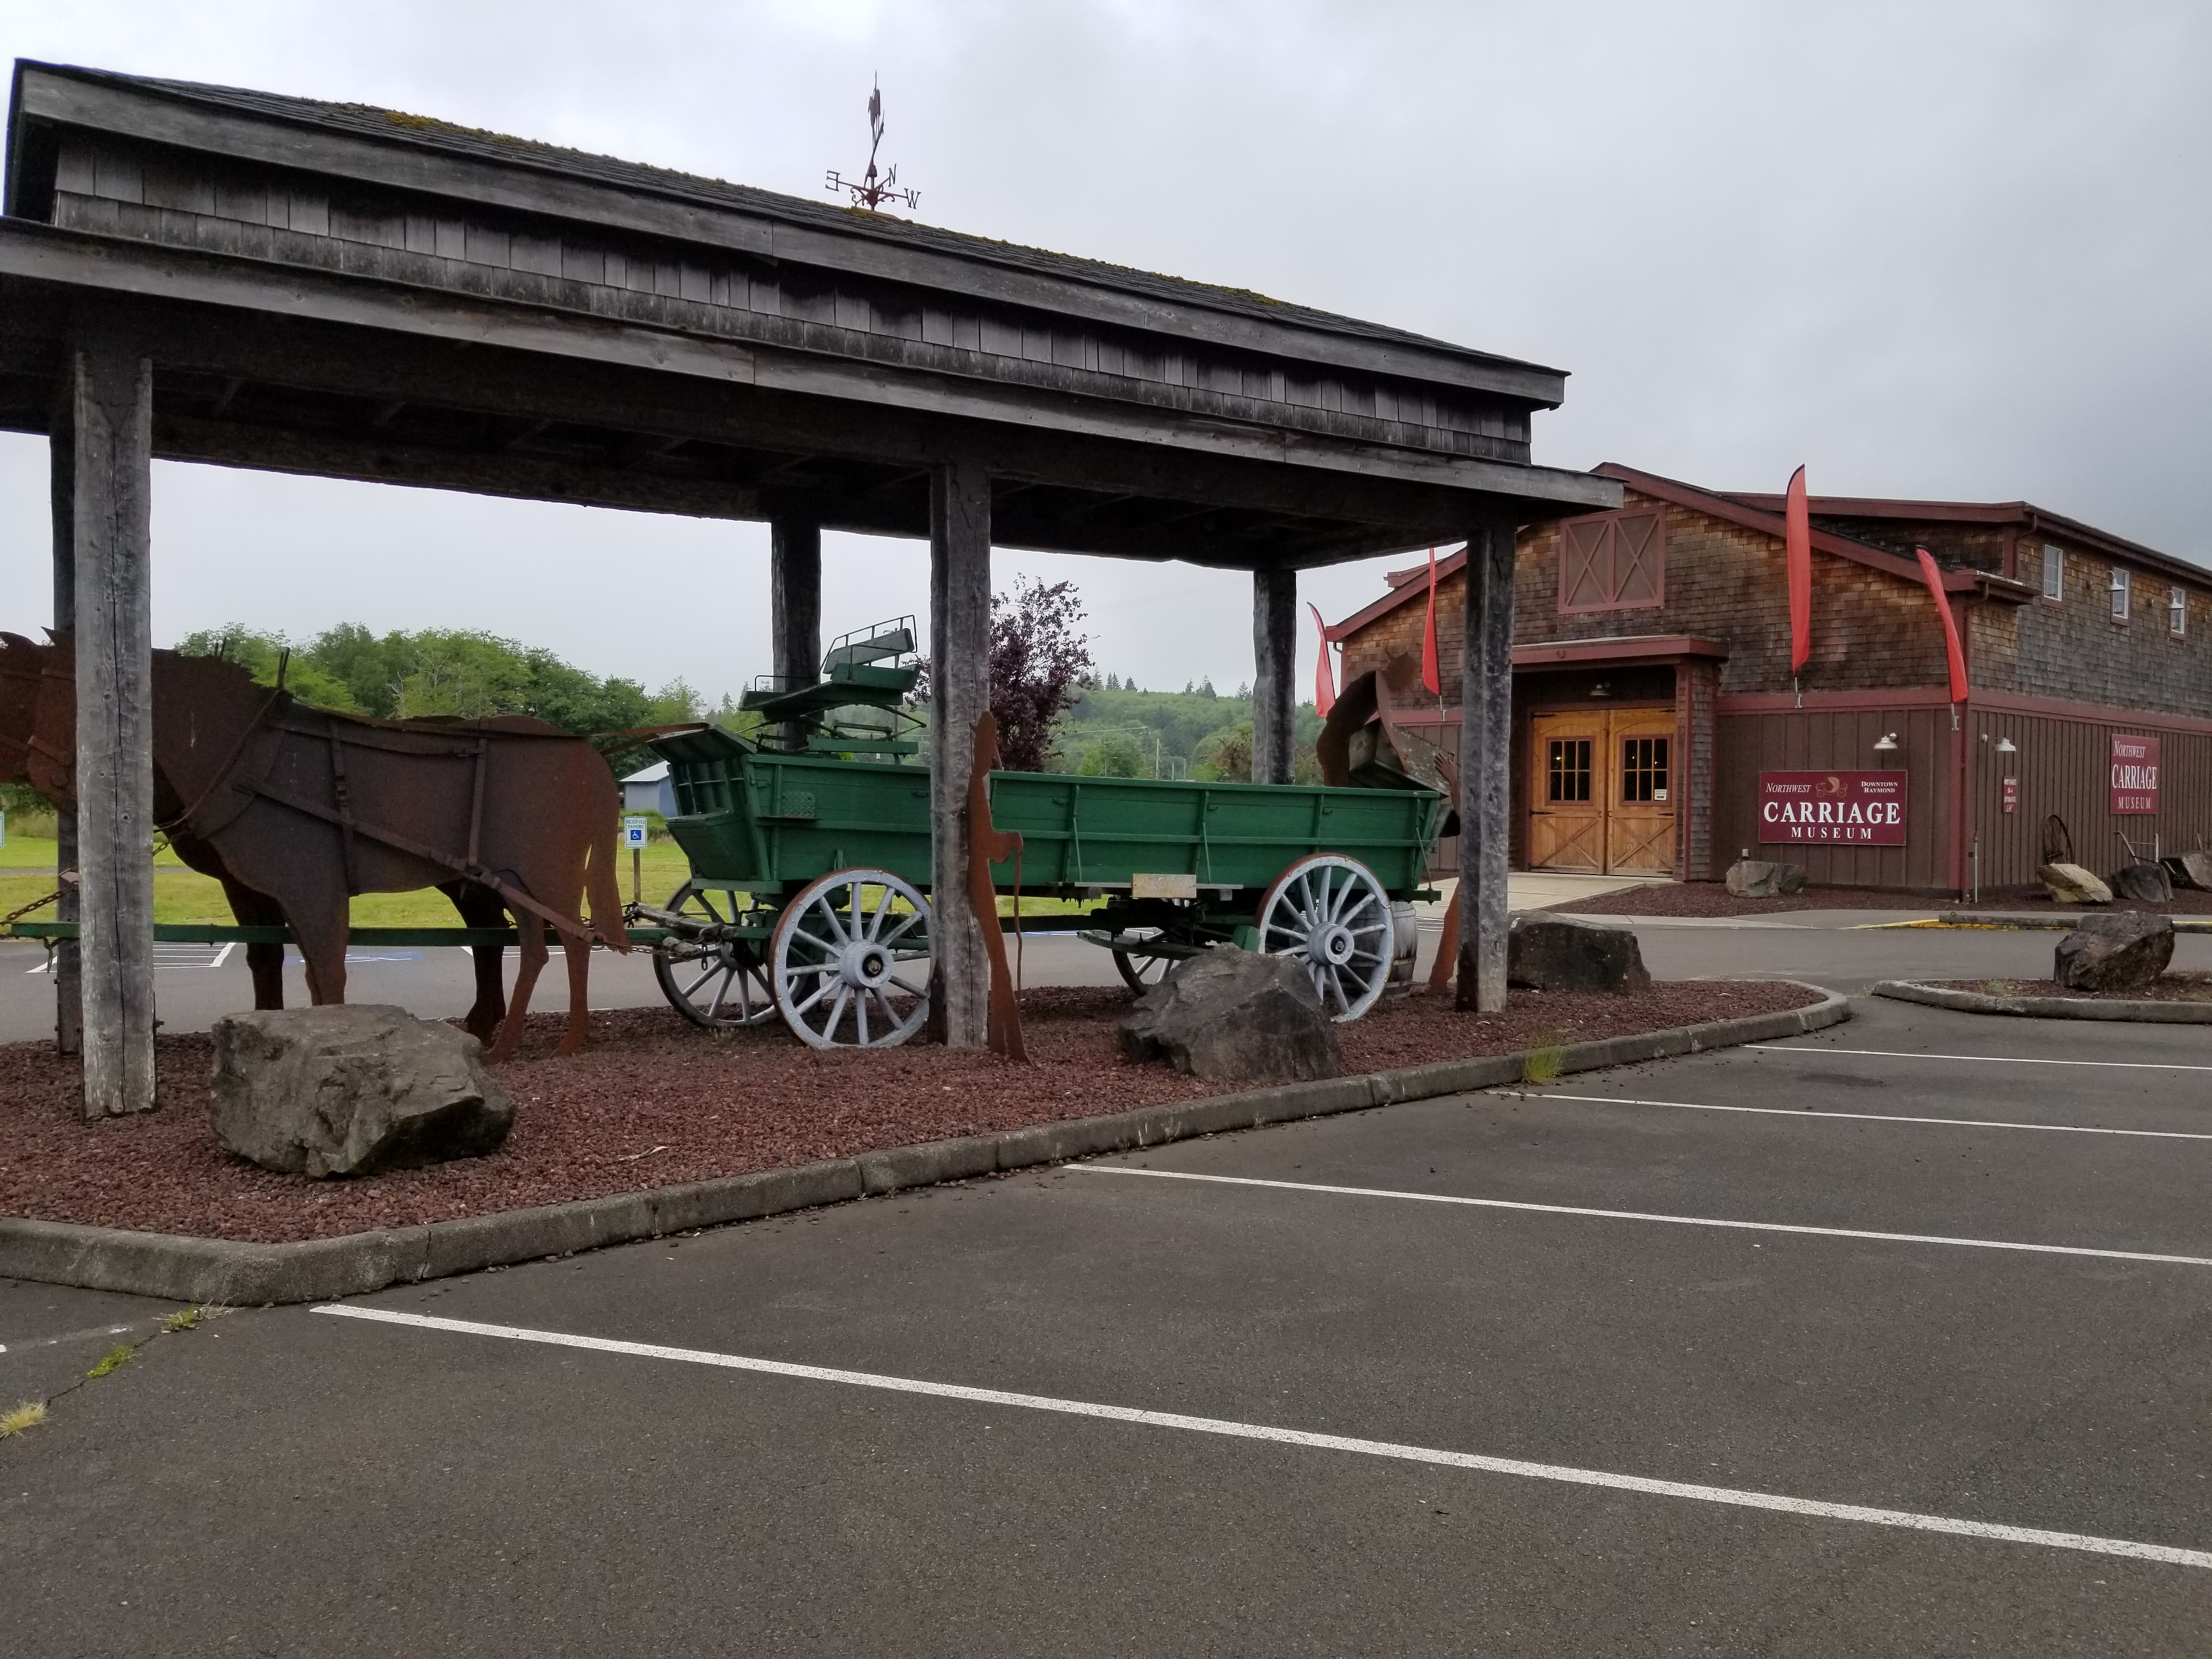 NW Carriage Museum in Raymond, WA